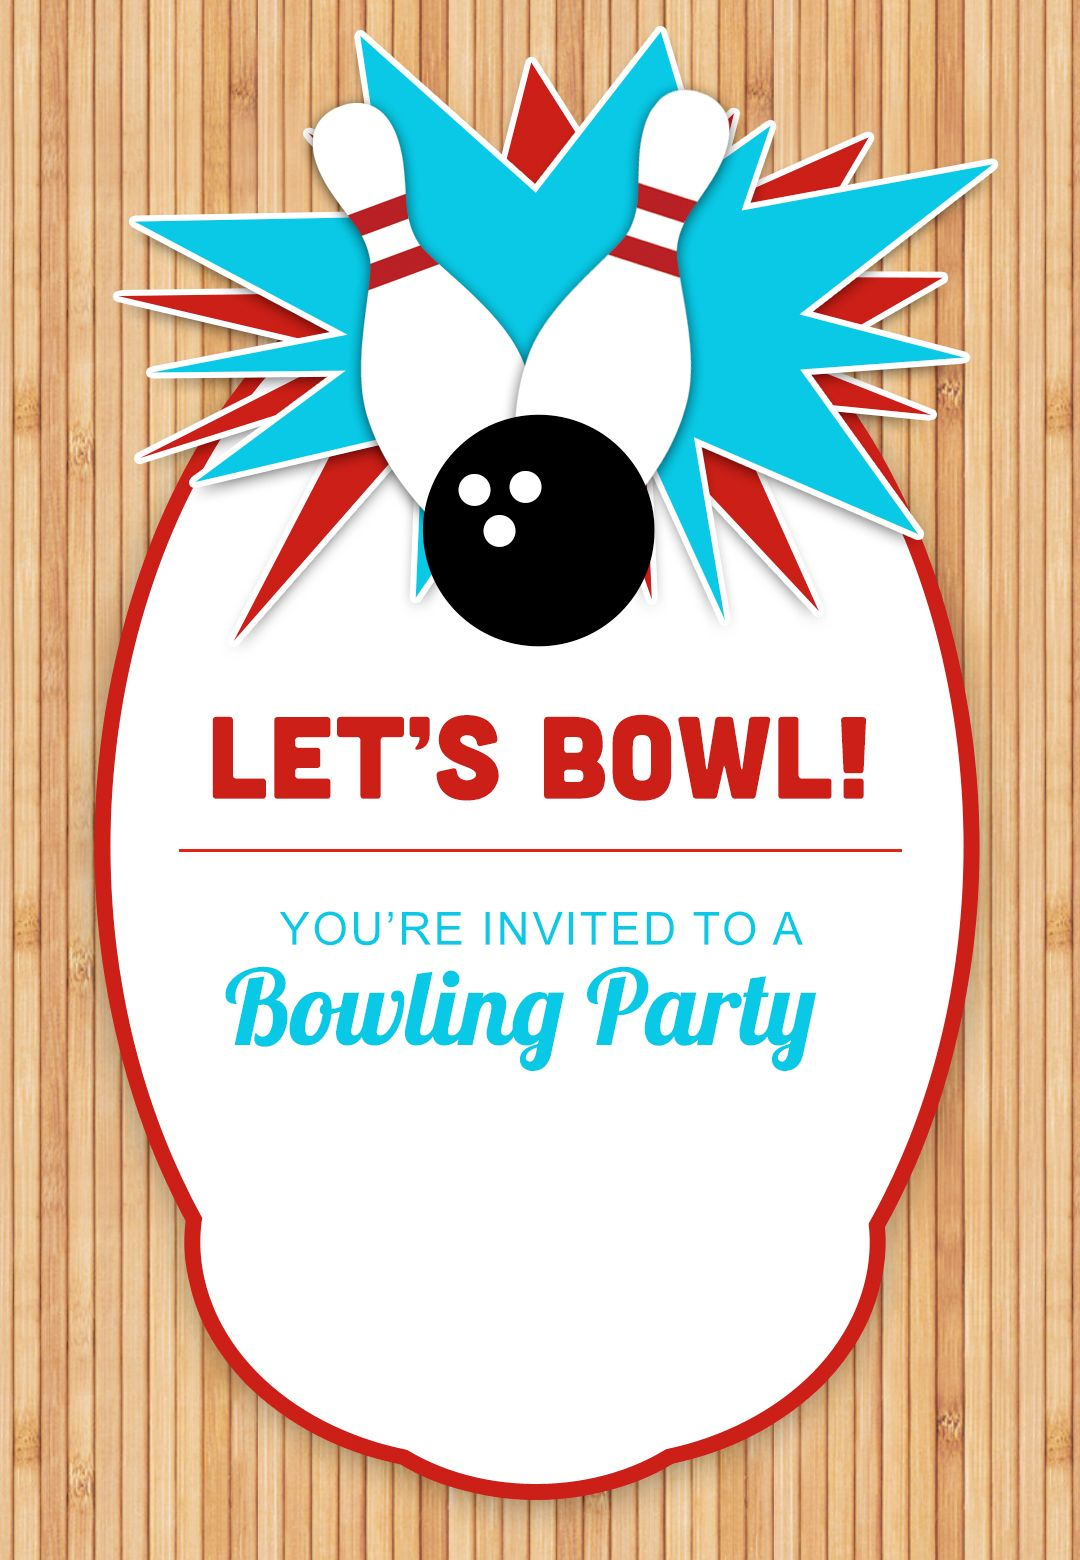 Bowling Party - Free Printable Birthday Invitation Template - Free Printable Birthday Party Invitations With Photo